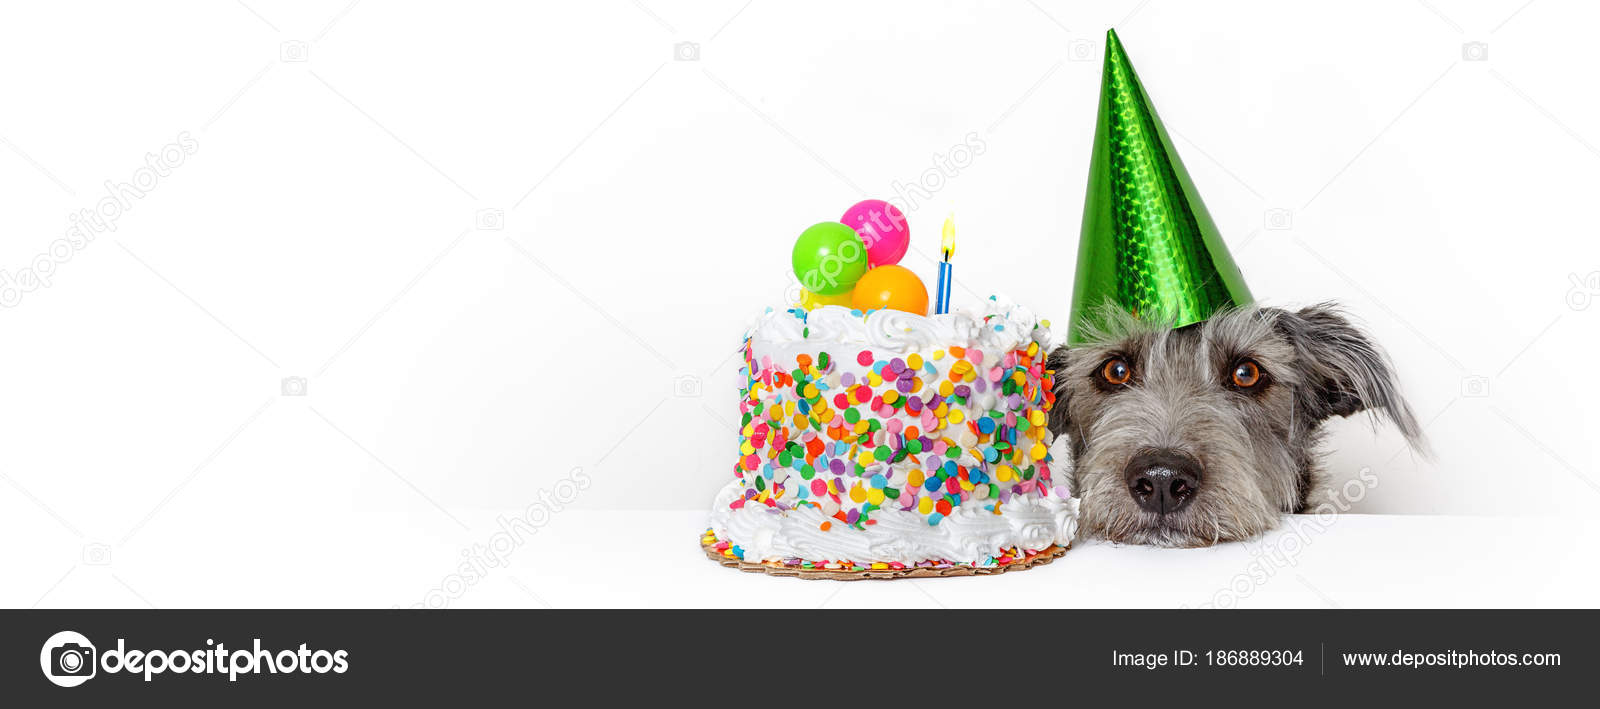 Cute Dog Party Hat Birthday Cake Horizontal Web Banner Social Stock Image